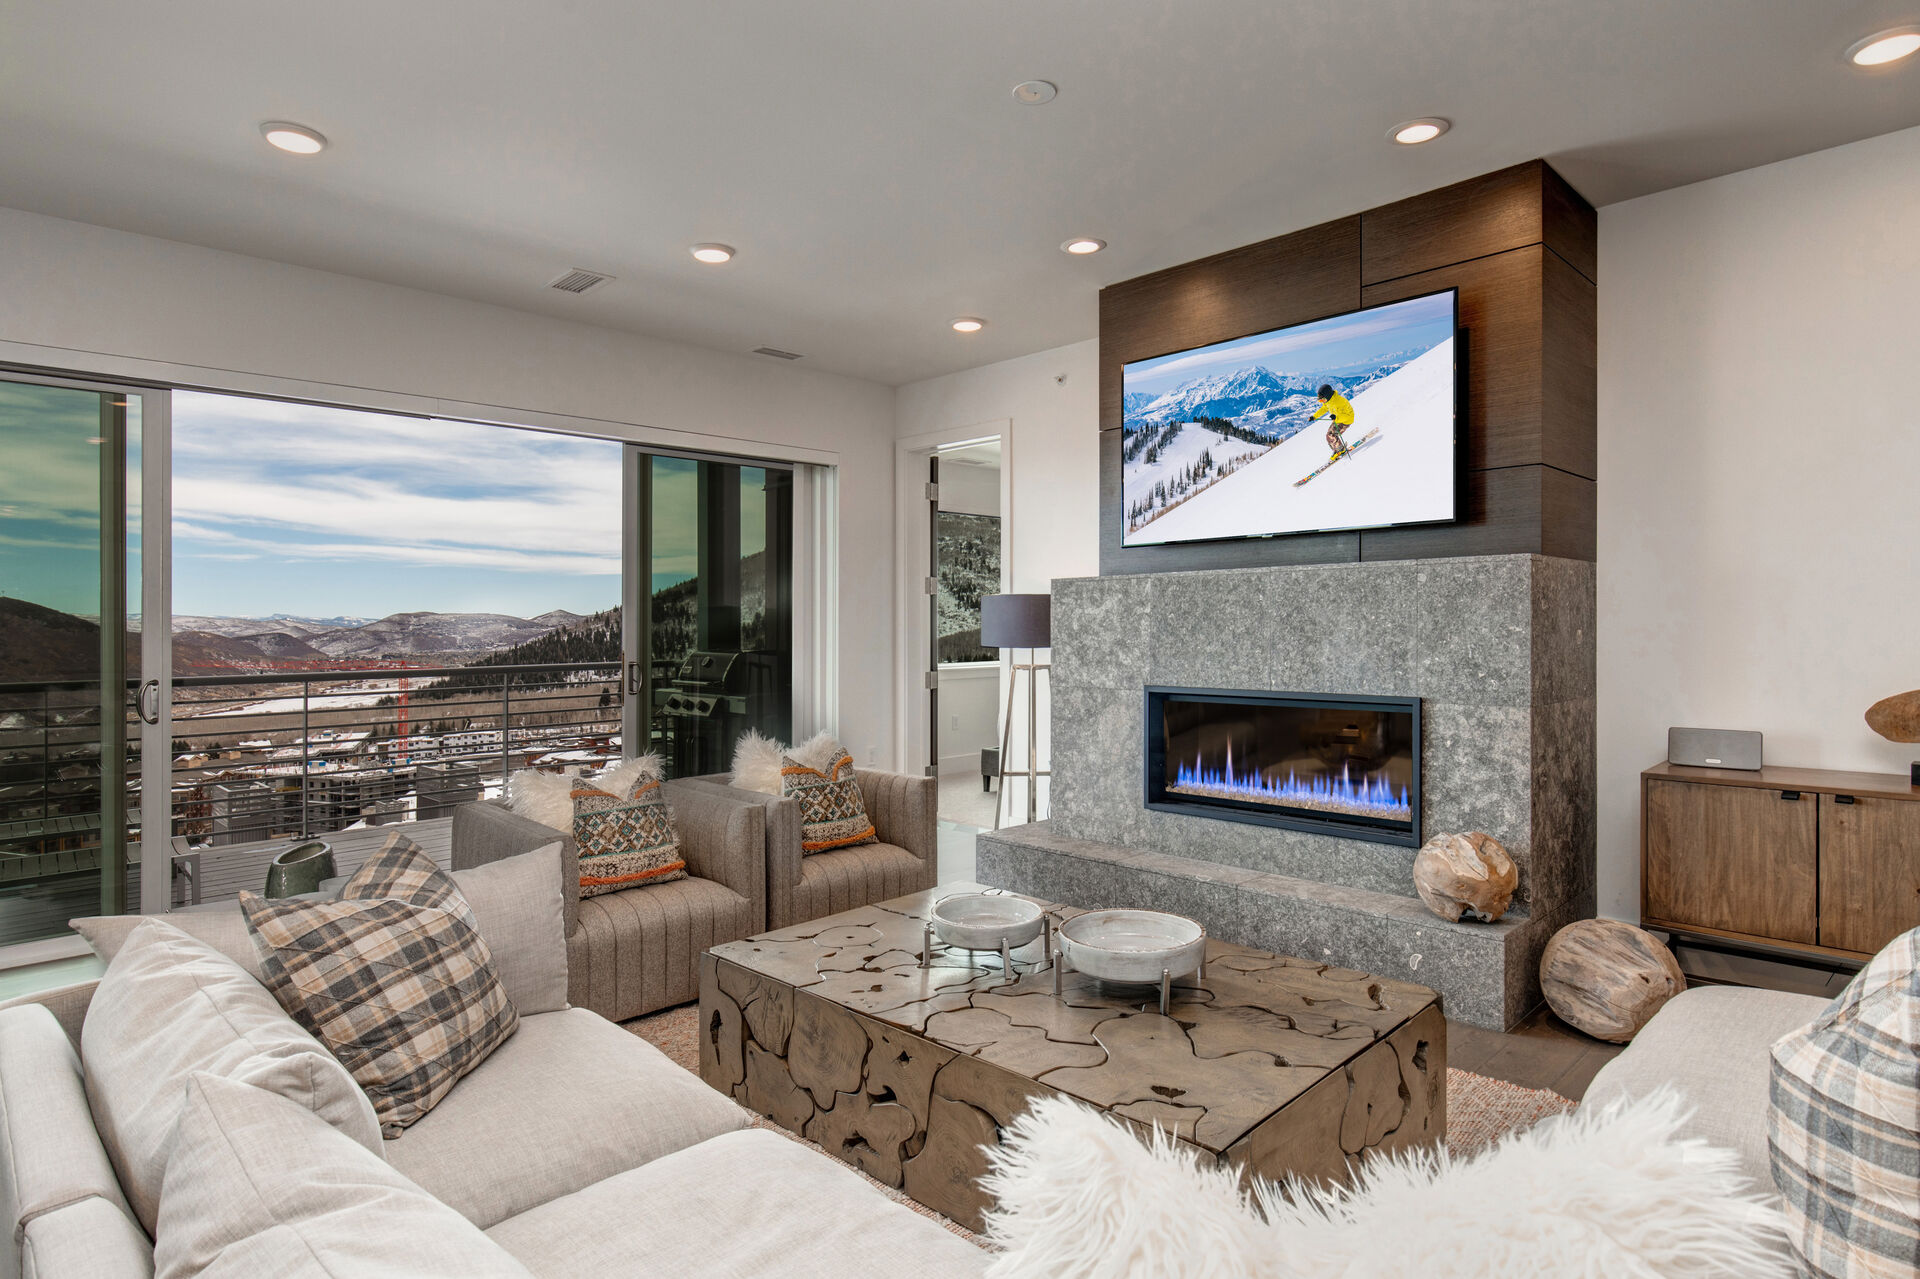 Living Room with Fireplace in One of Our Park City Vacation Rentals Ski In Ski Out.